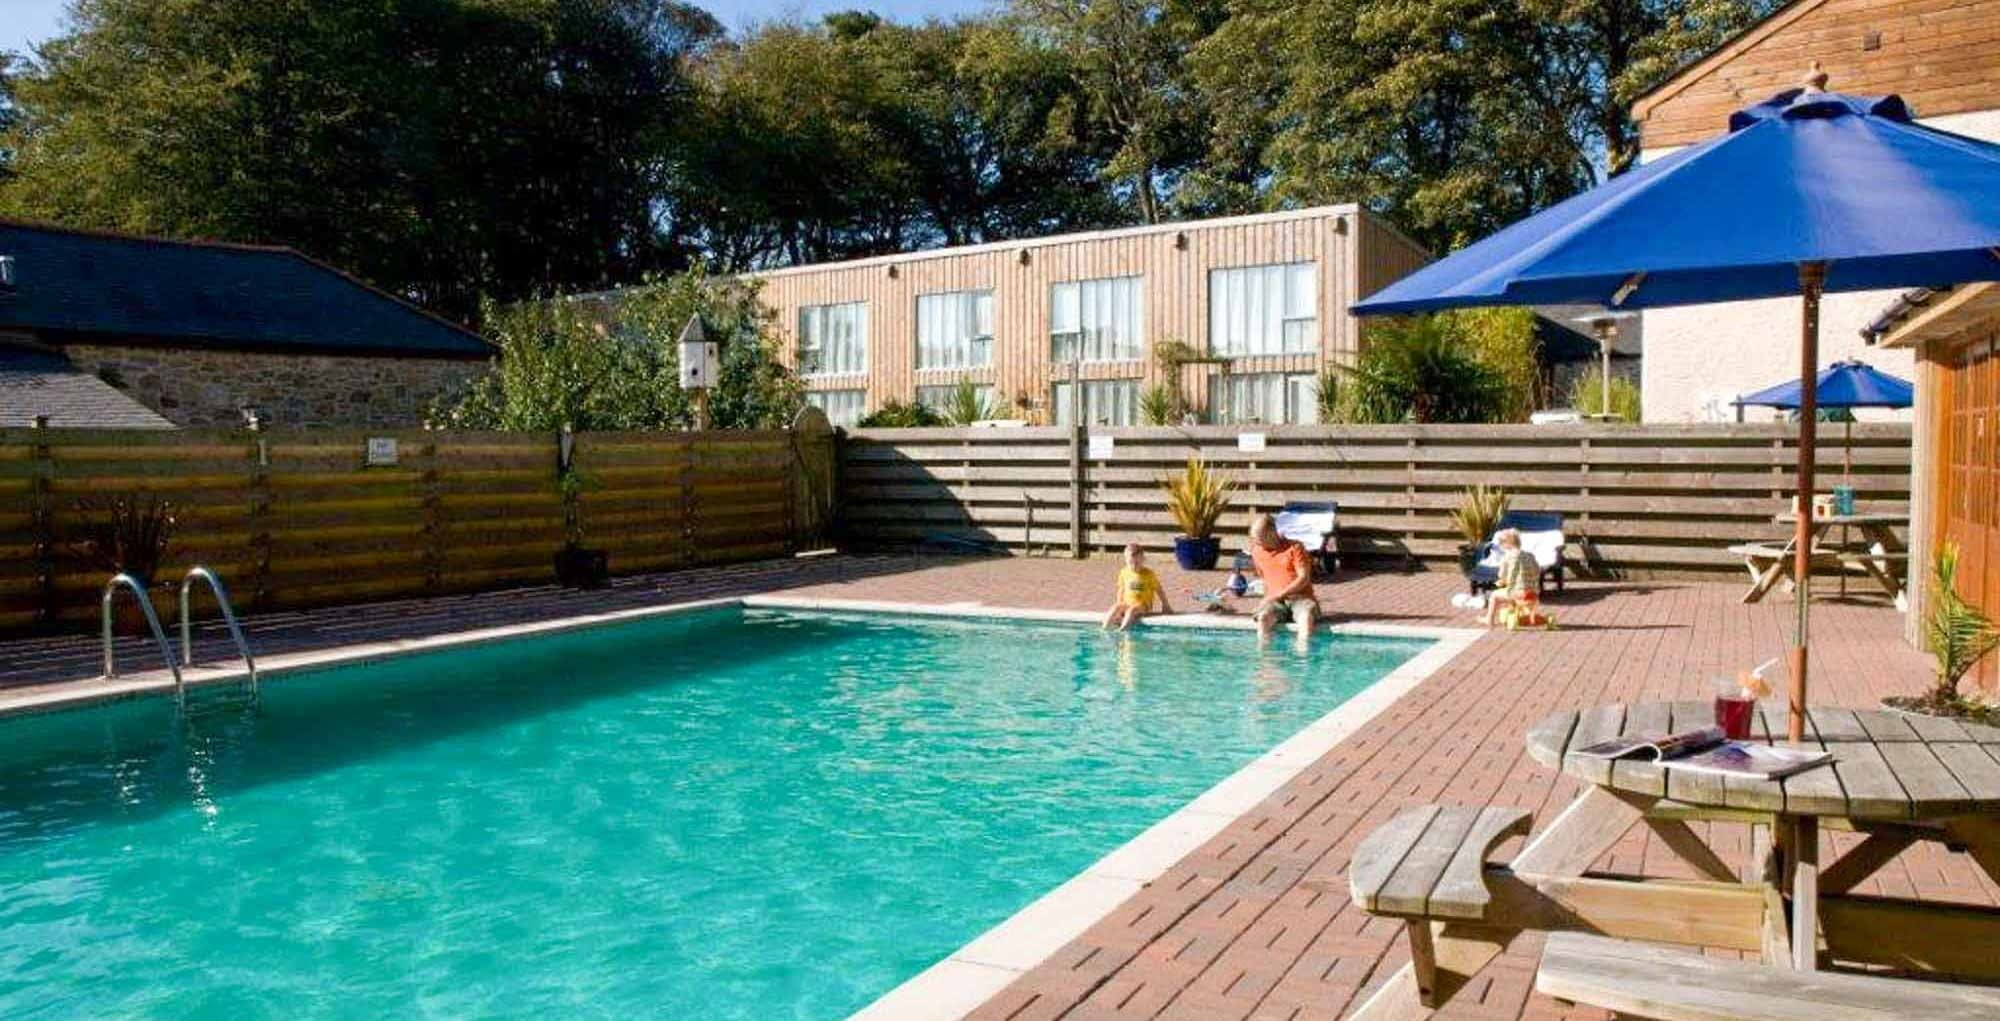 Cornwall Holiday Cottages U0026 Homes With Swimming Pool